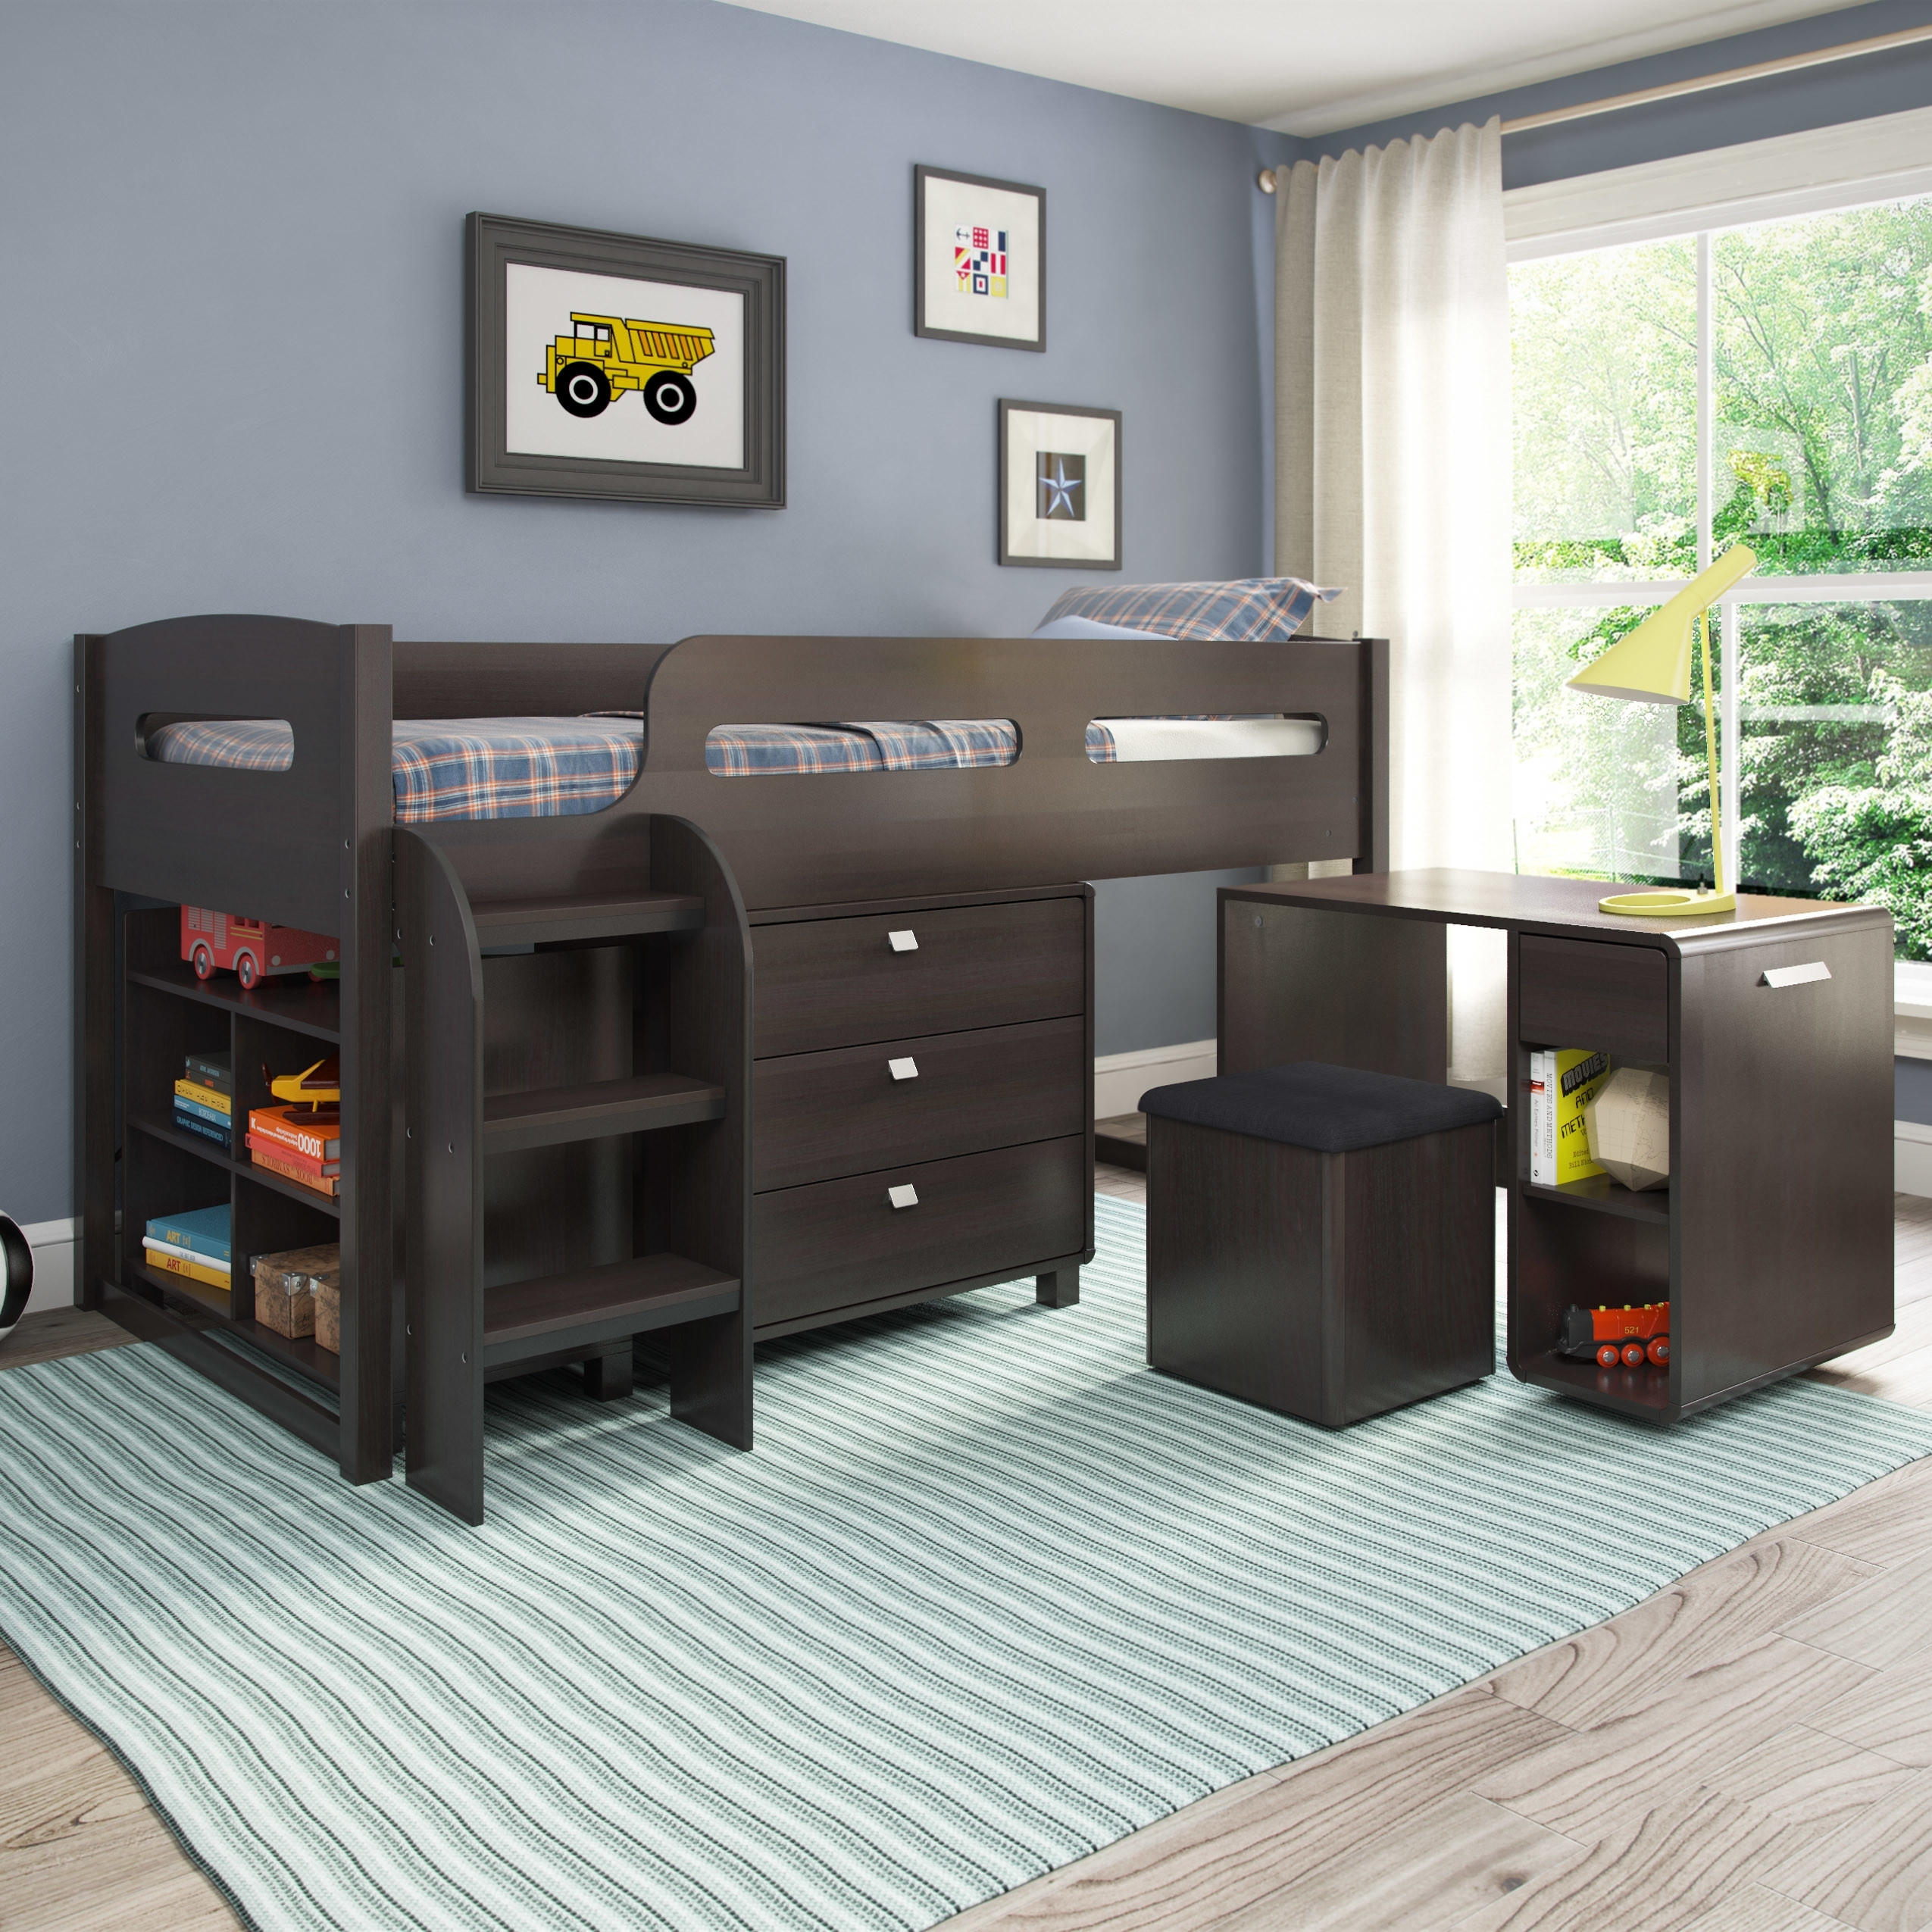 Image of: Bunk Beds For Kids Loft Beds For Kids Together With Twin Over Full